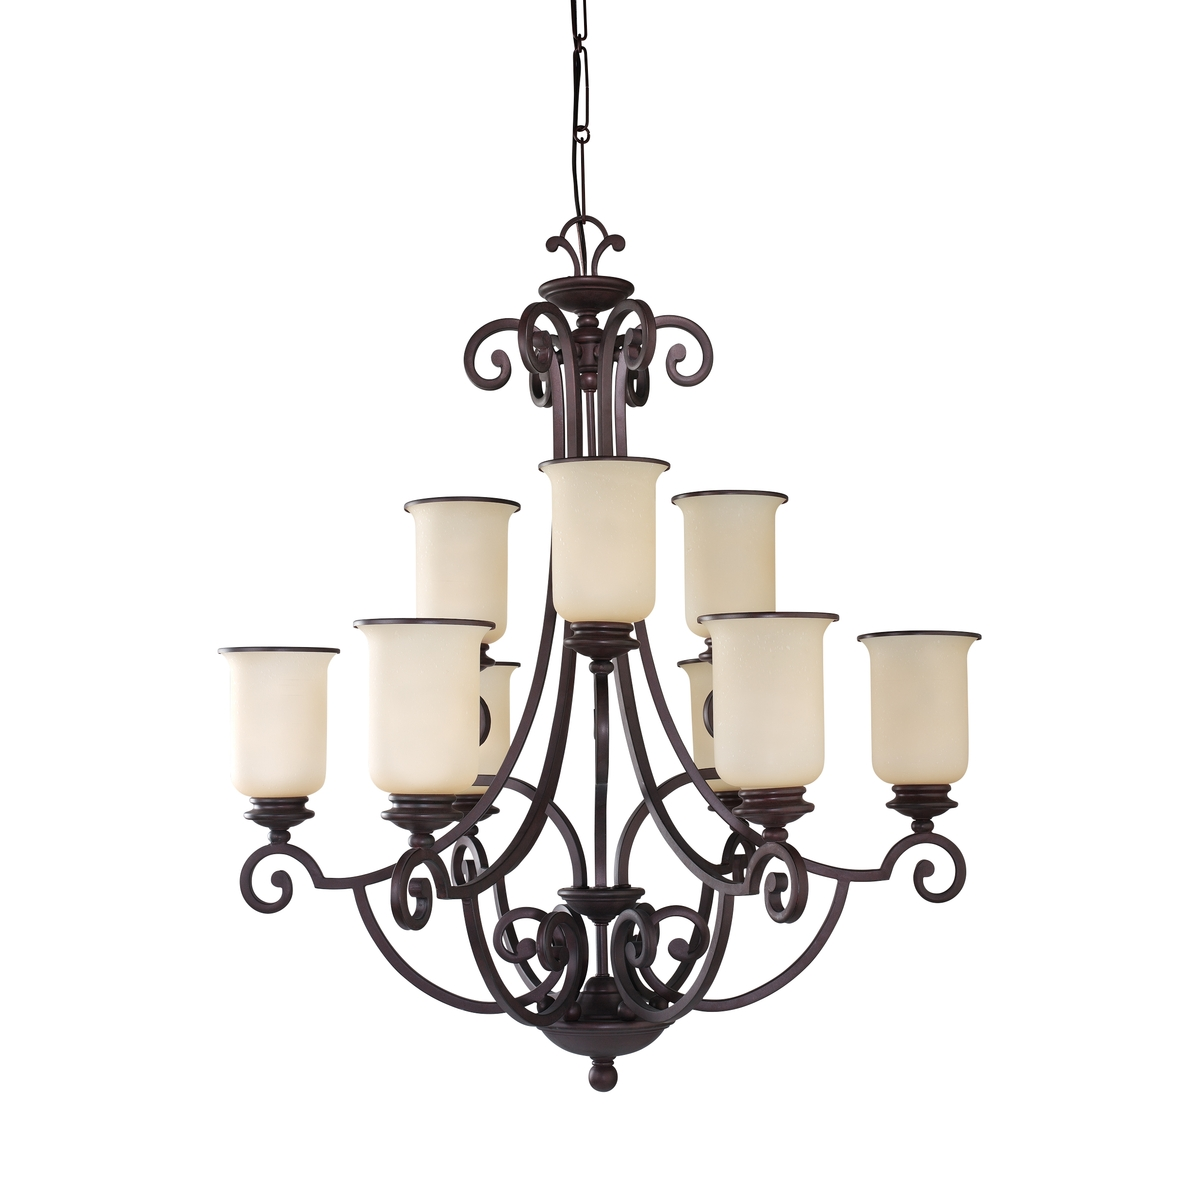 Acadia 9 Light 32 Inch Misted Bronze Chandelier Ceiling